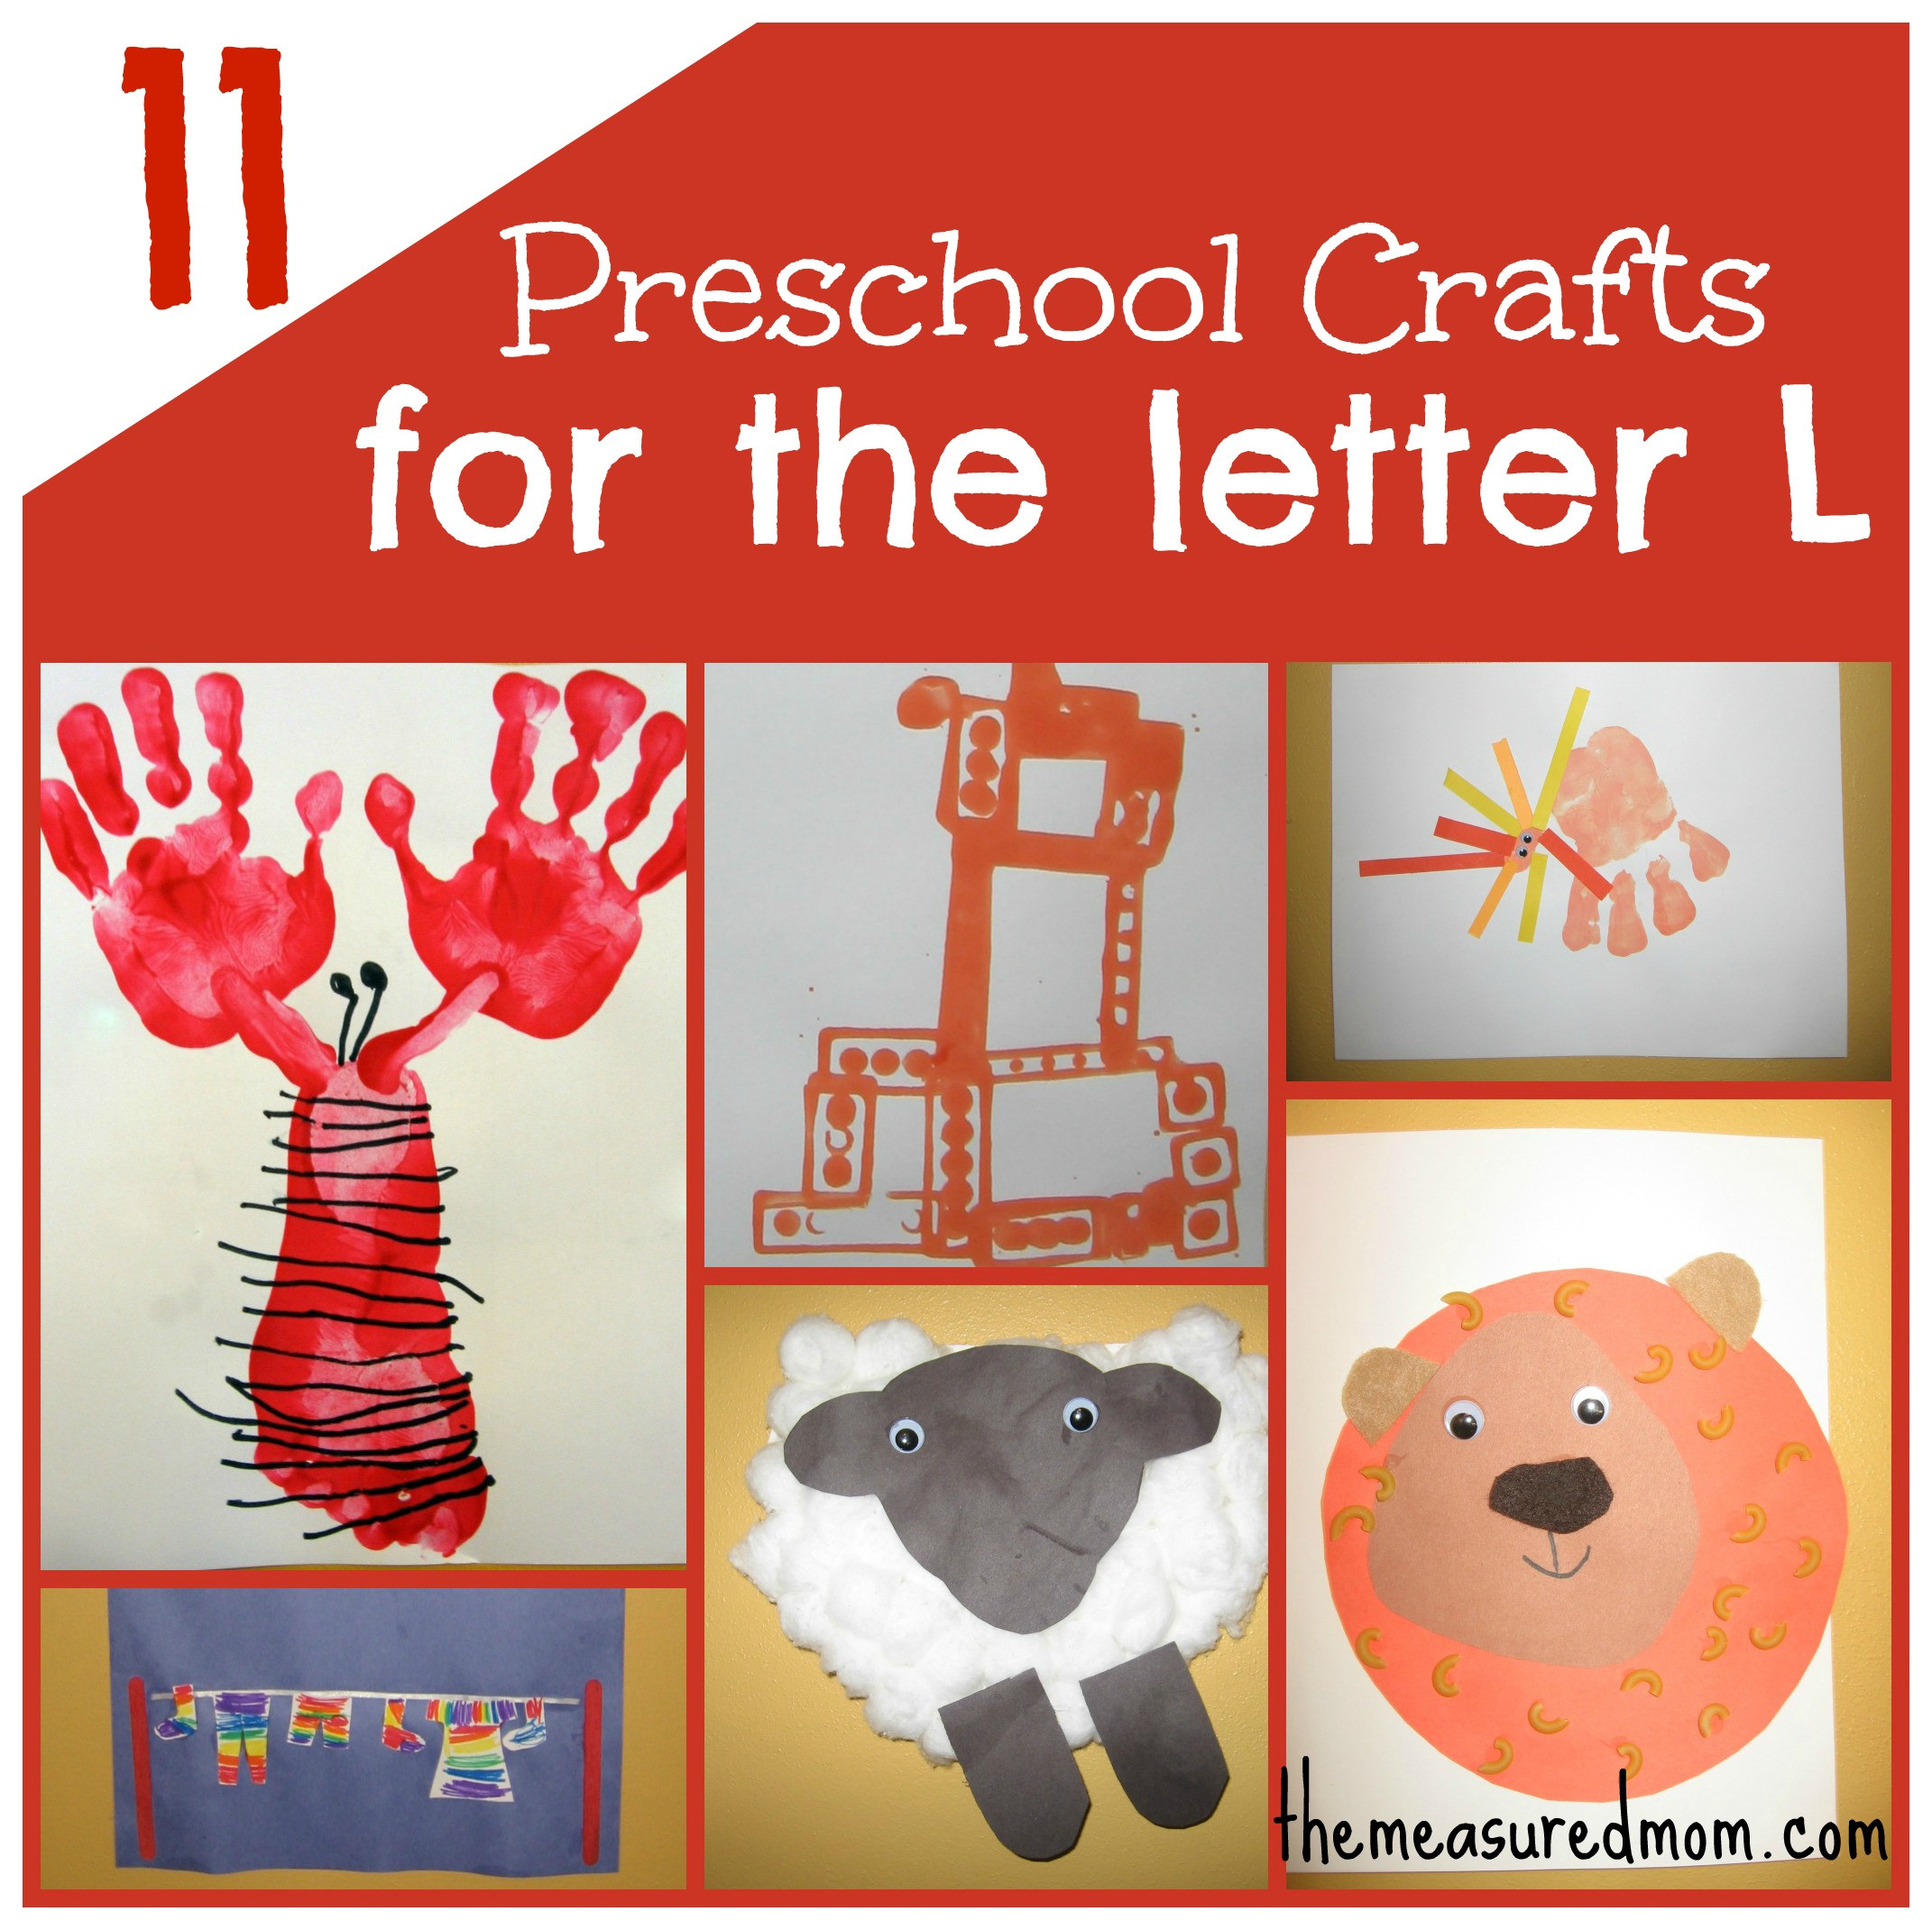 Best ideas about I Crafts For Preschoolers . Save or Pin 11 Crafts for Preschool The Letter L The Measured Mom Now.